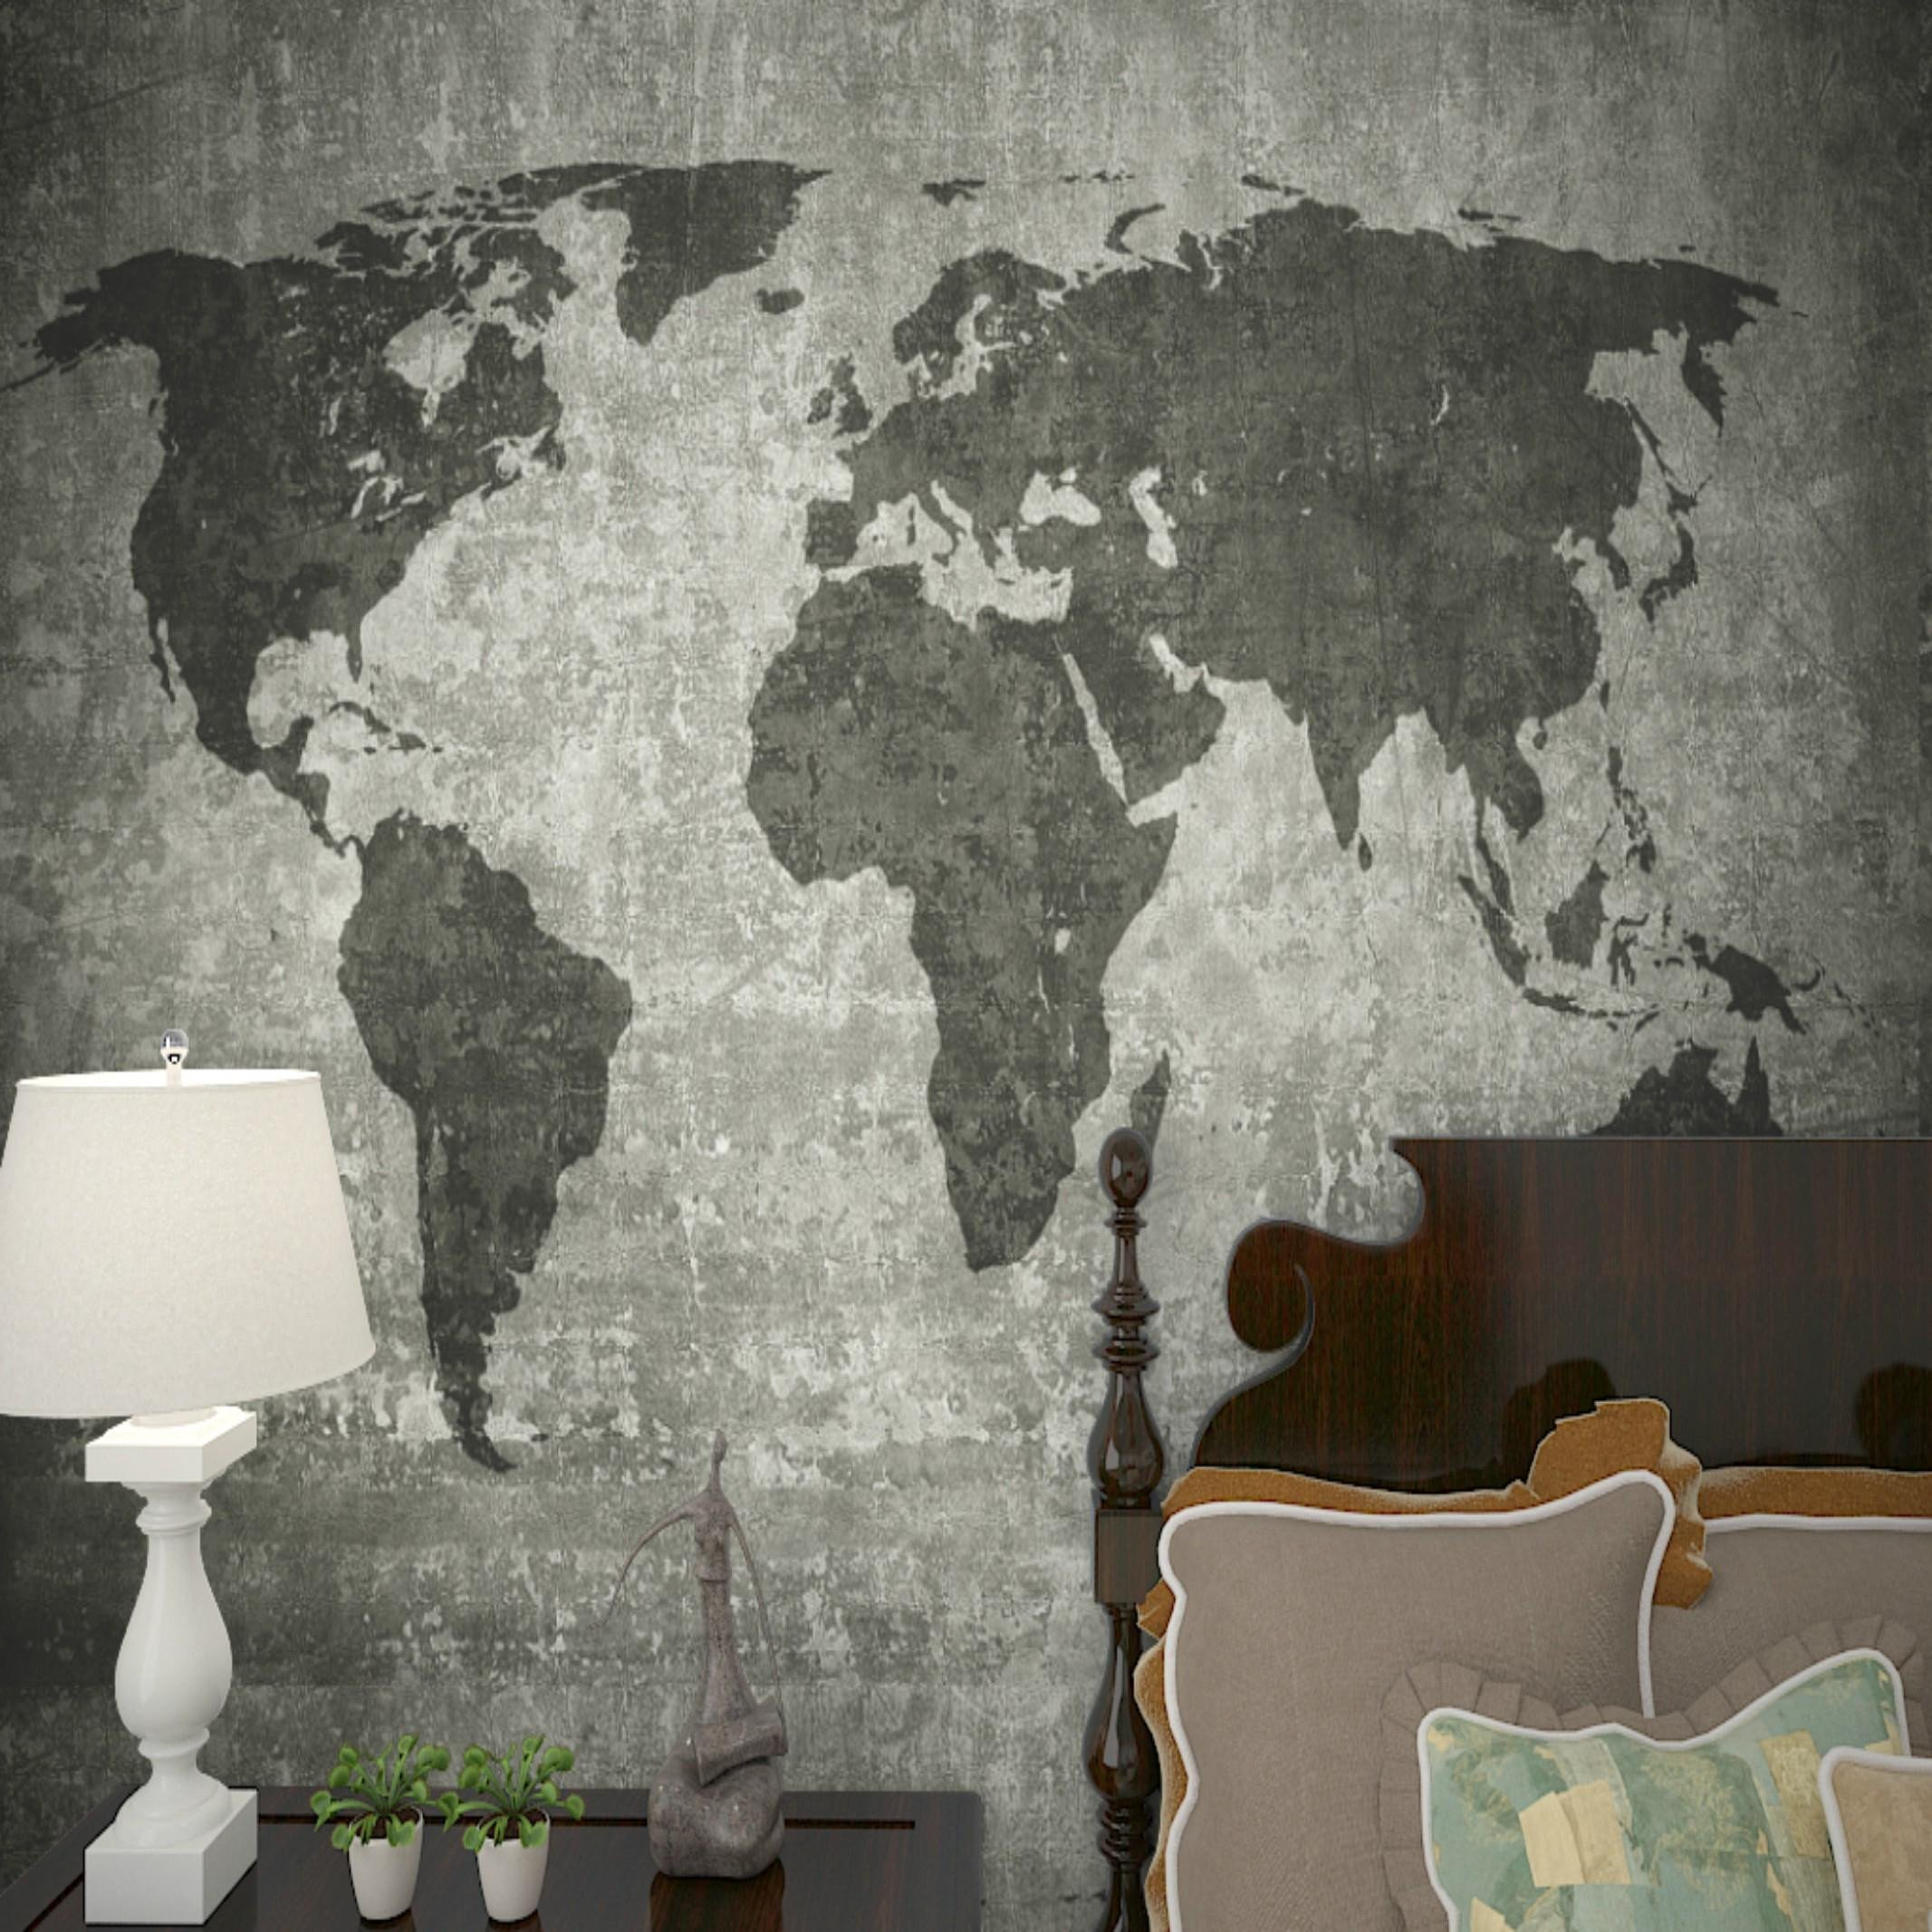 Wallpapers for Bedroom Wall Awesome Custom Wallpaper Vintage World Map Background Wall Living Room Bedroom Tv Background Mural 3d Wallpaper Image Wallpaper Image Wallpaper S